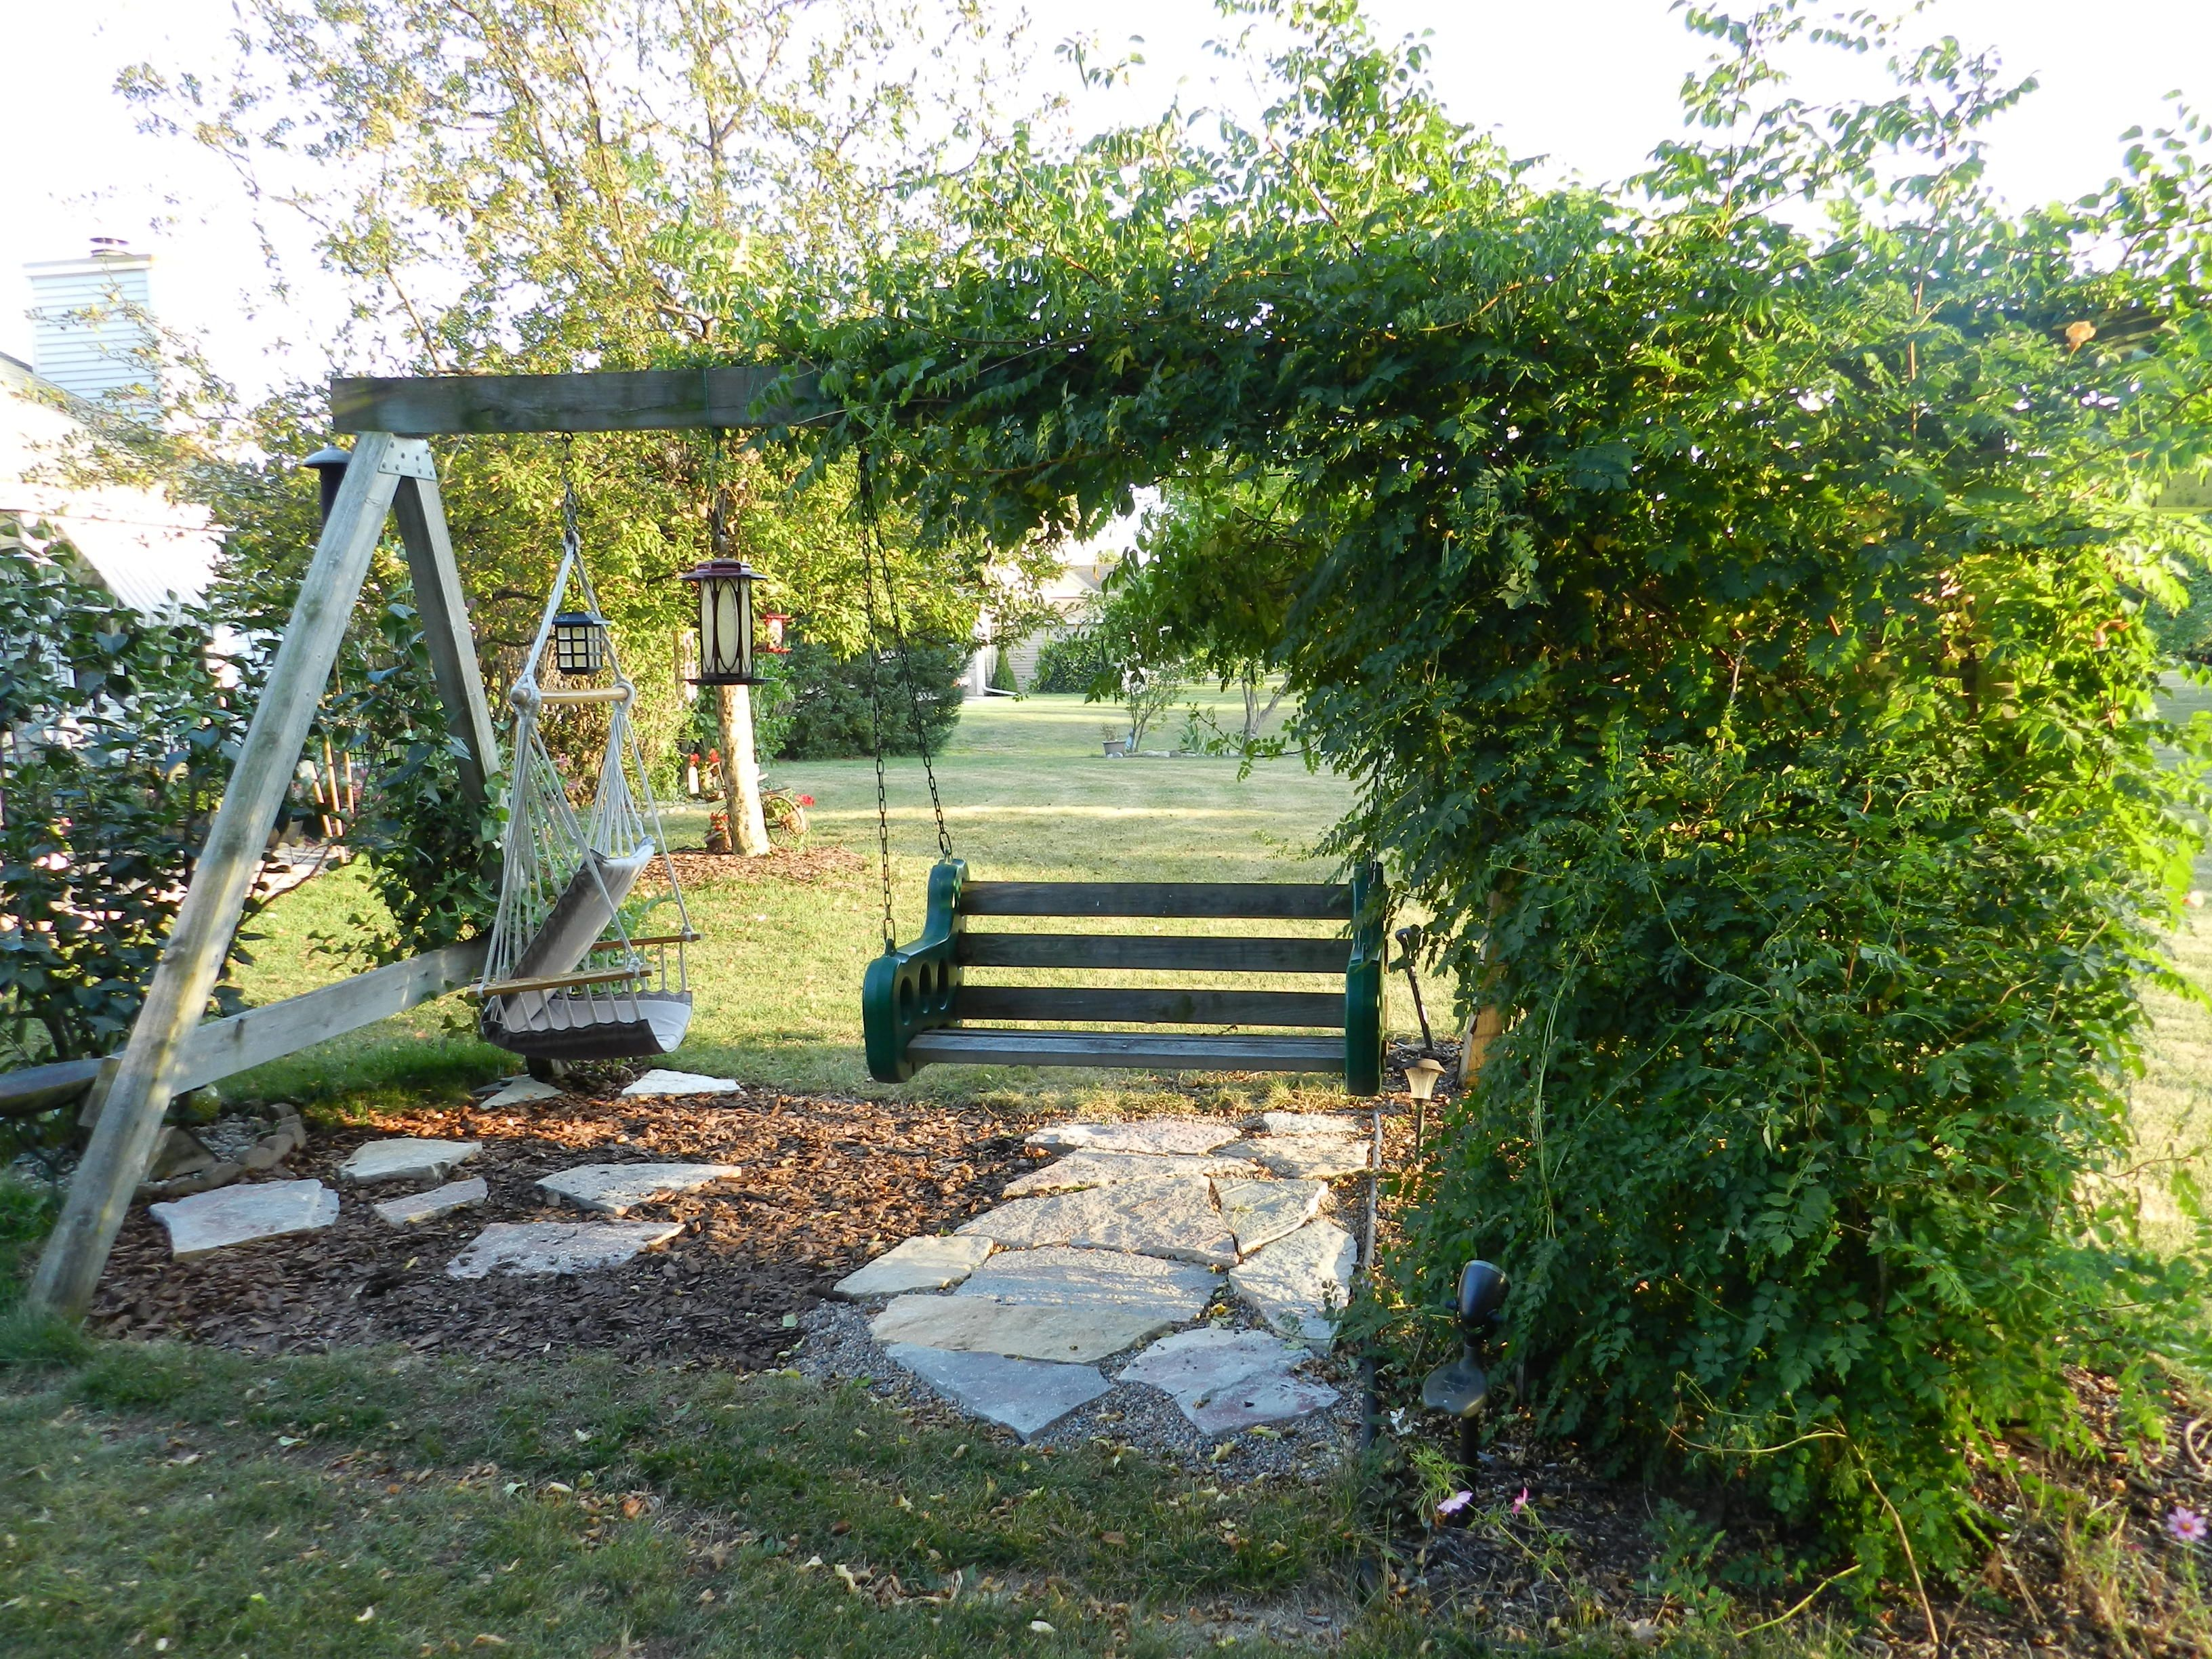 Save That Old Swing Set And Make It Yours.